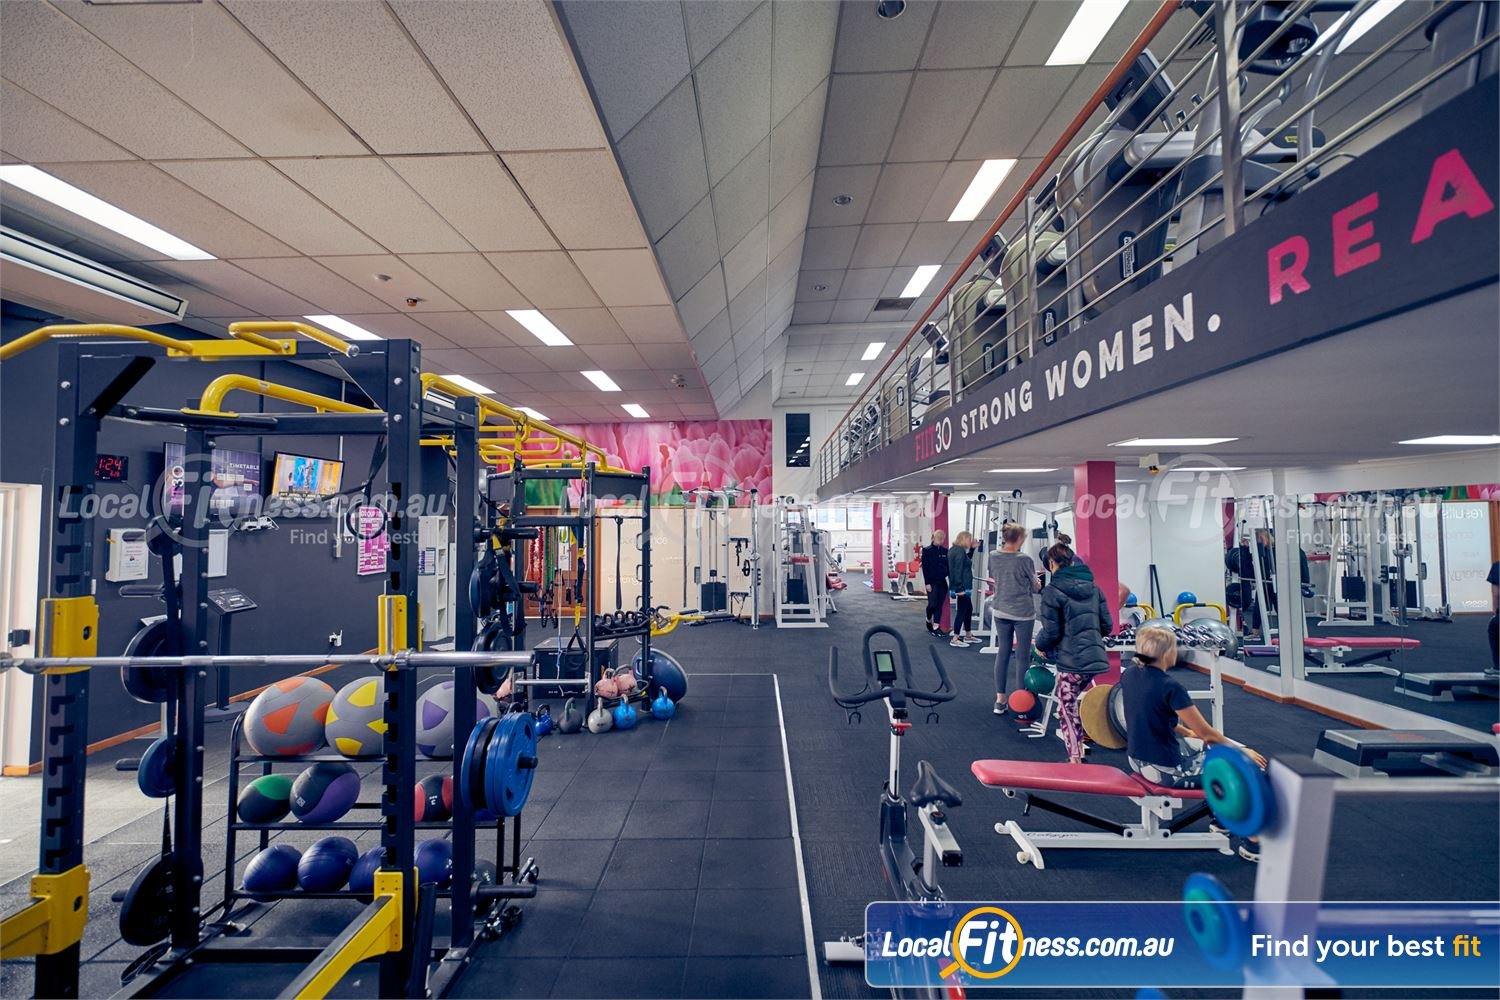 Fernwood Fitness Carlton Our Carlton womens free-weights area includes a full range of dumbbells, barbells and more.